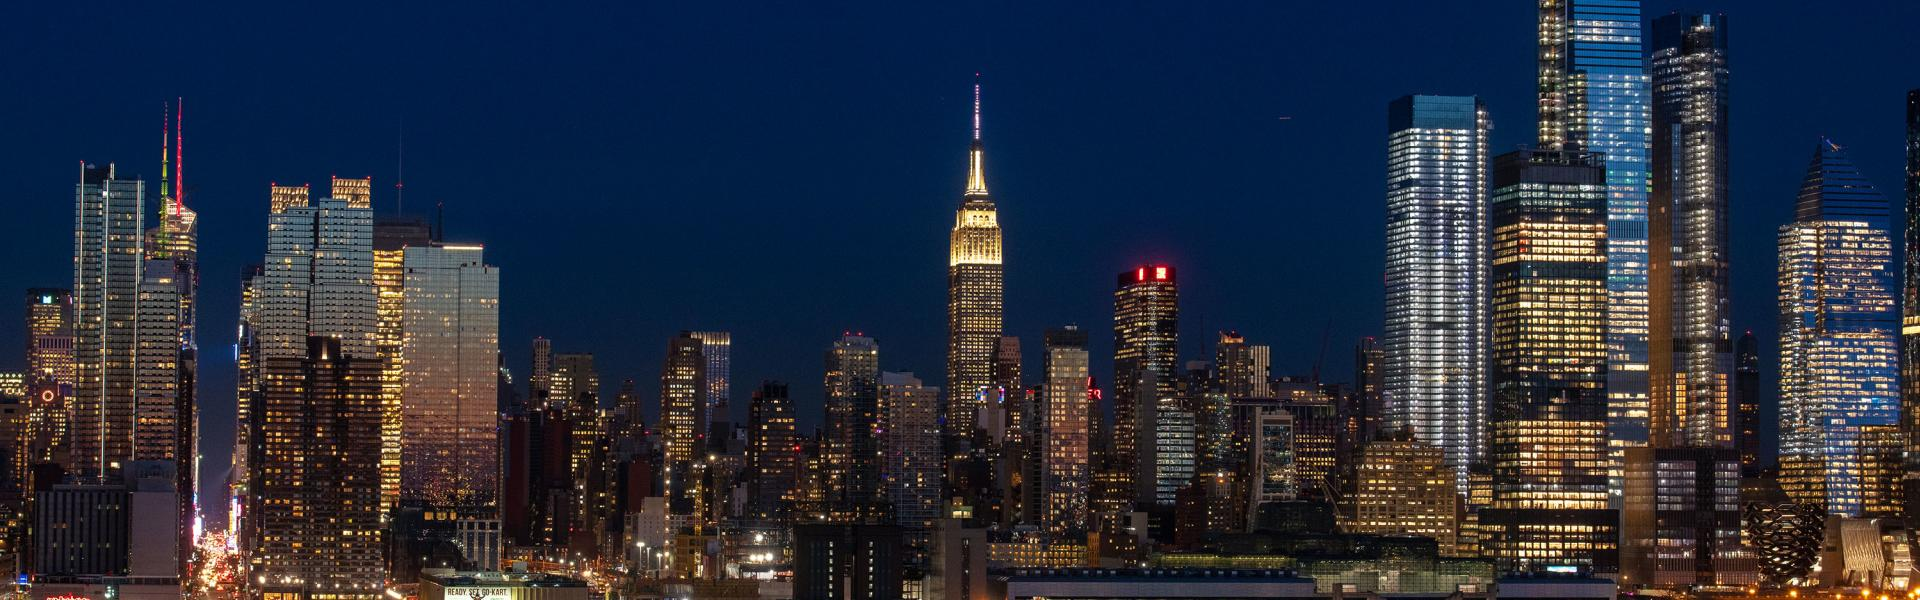 Skyline View at night, Midtown, Manhattan, NYC